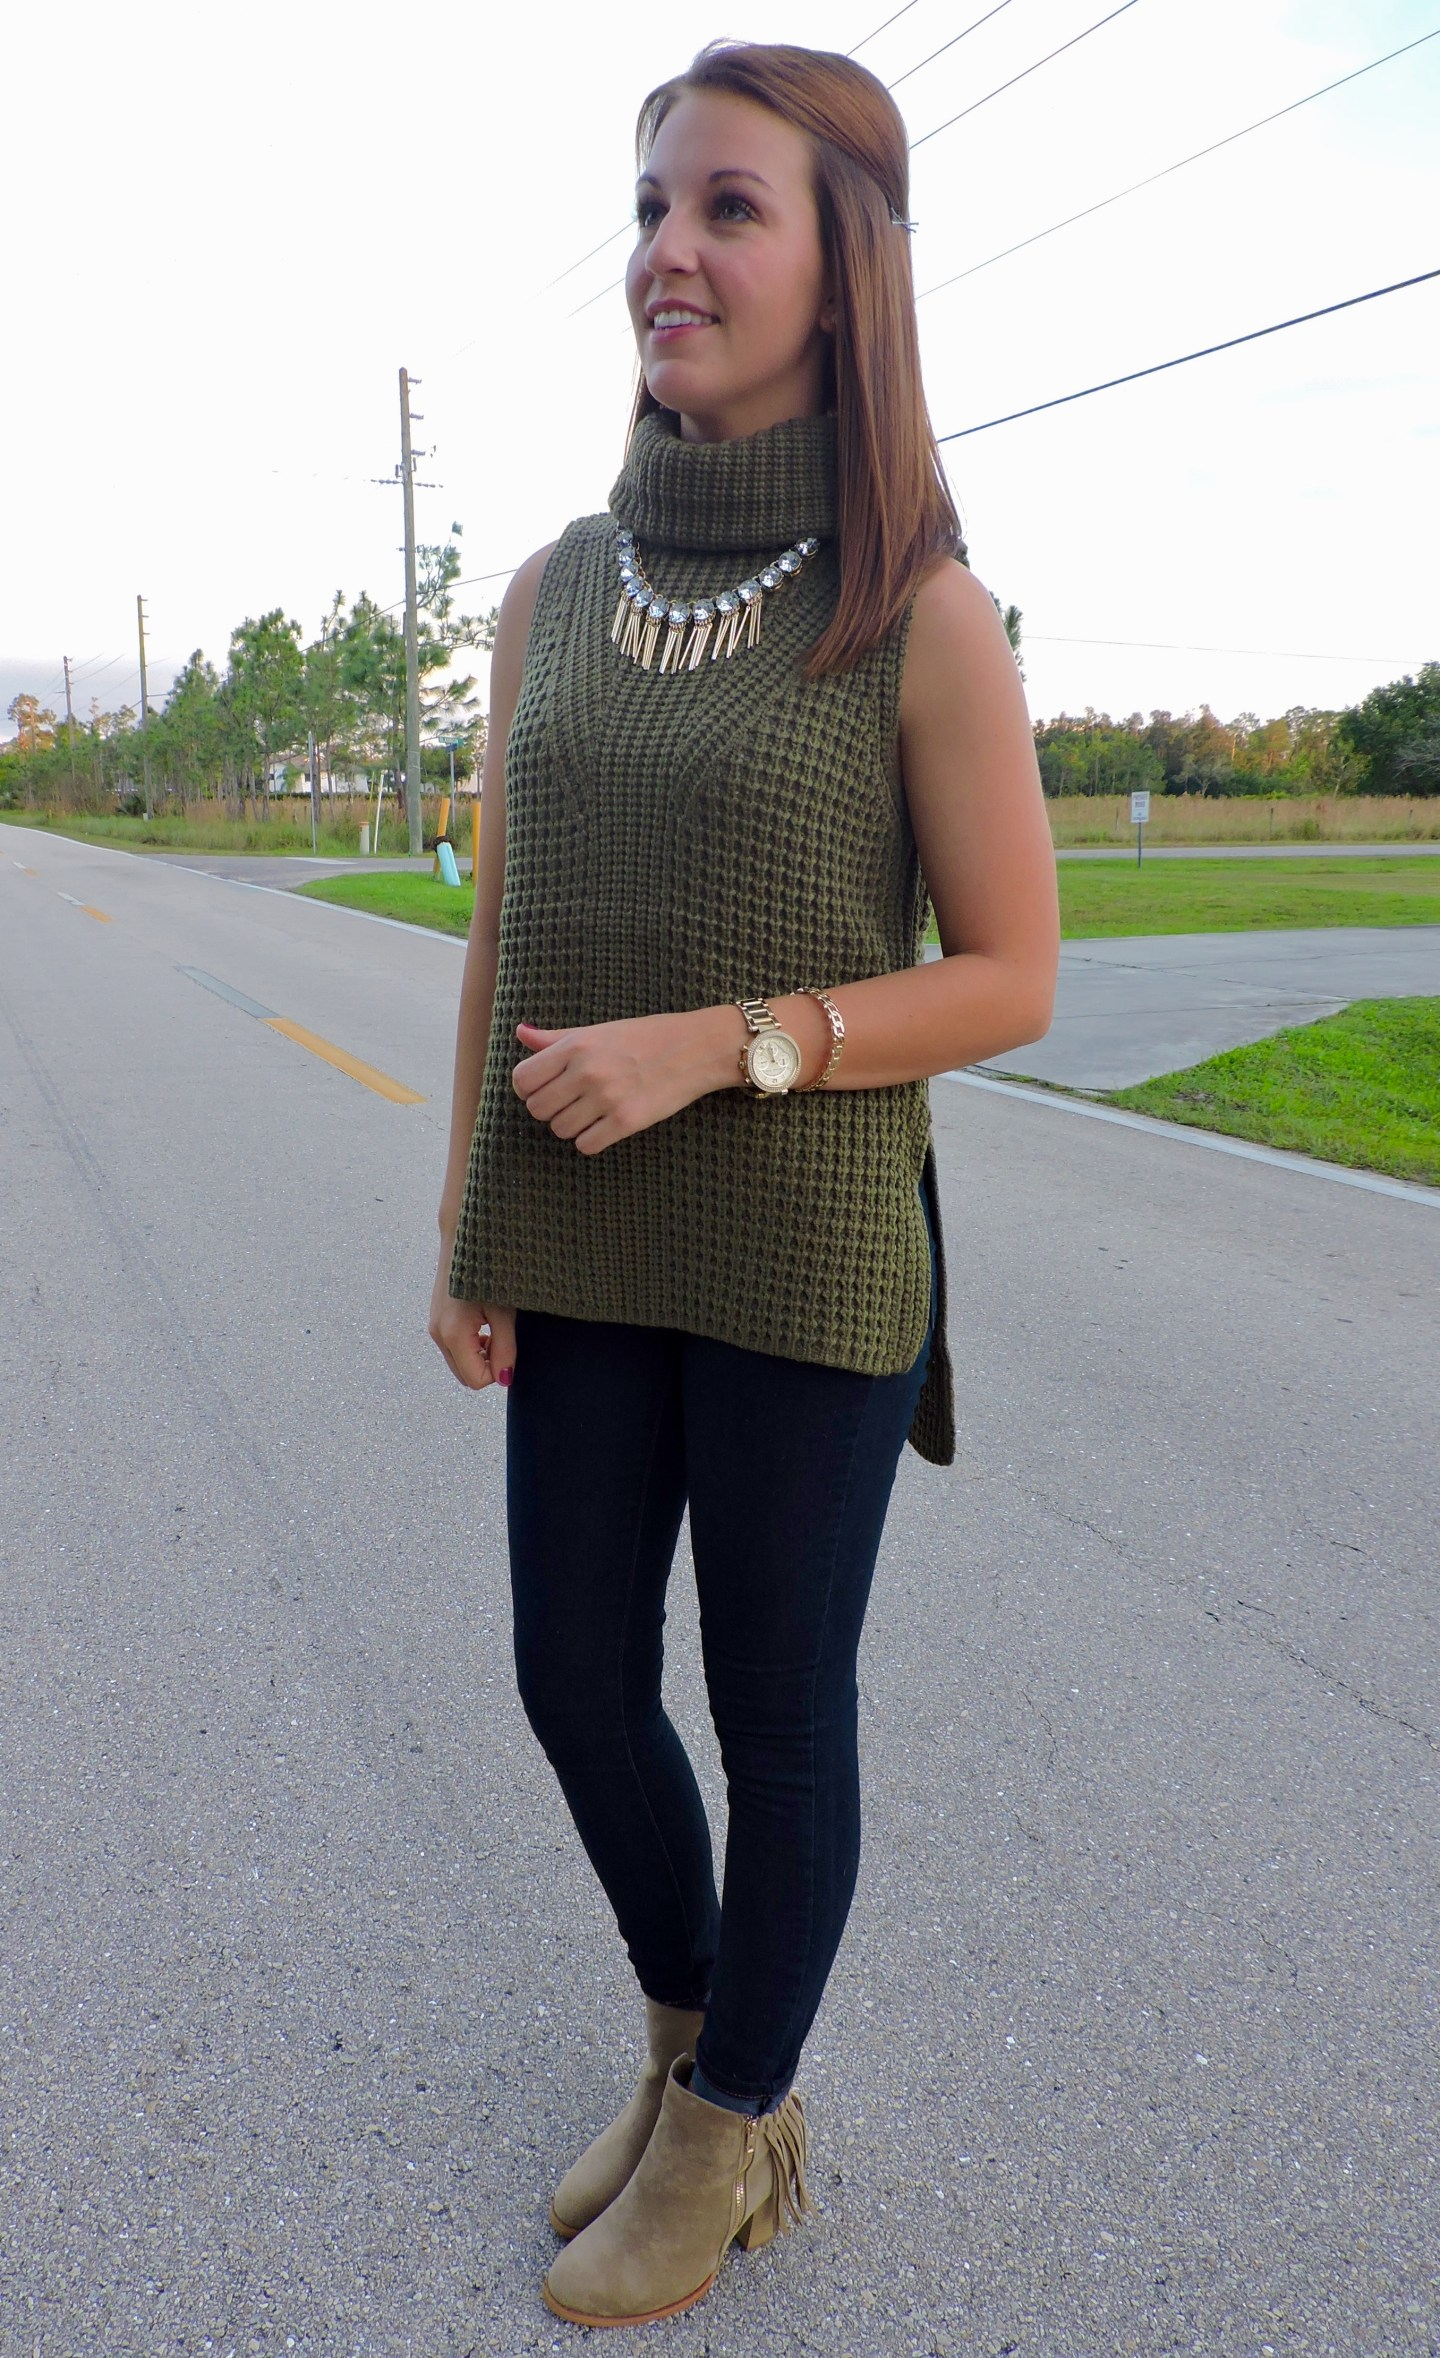 DSCN0189 - Statement Necklace With Turtleneck by Florida fashion blogger Absolutely Annie